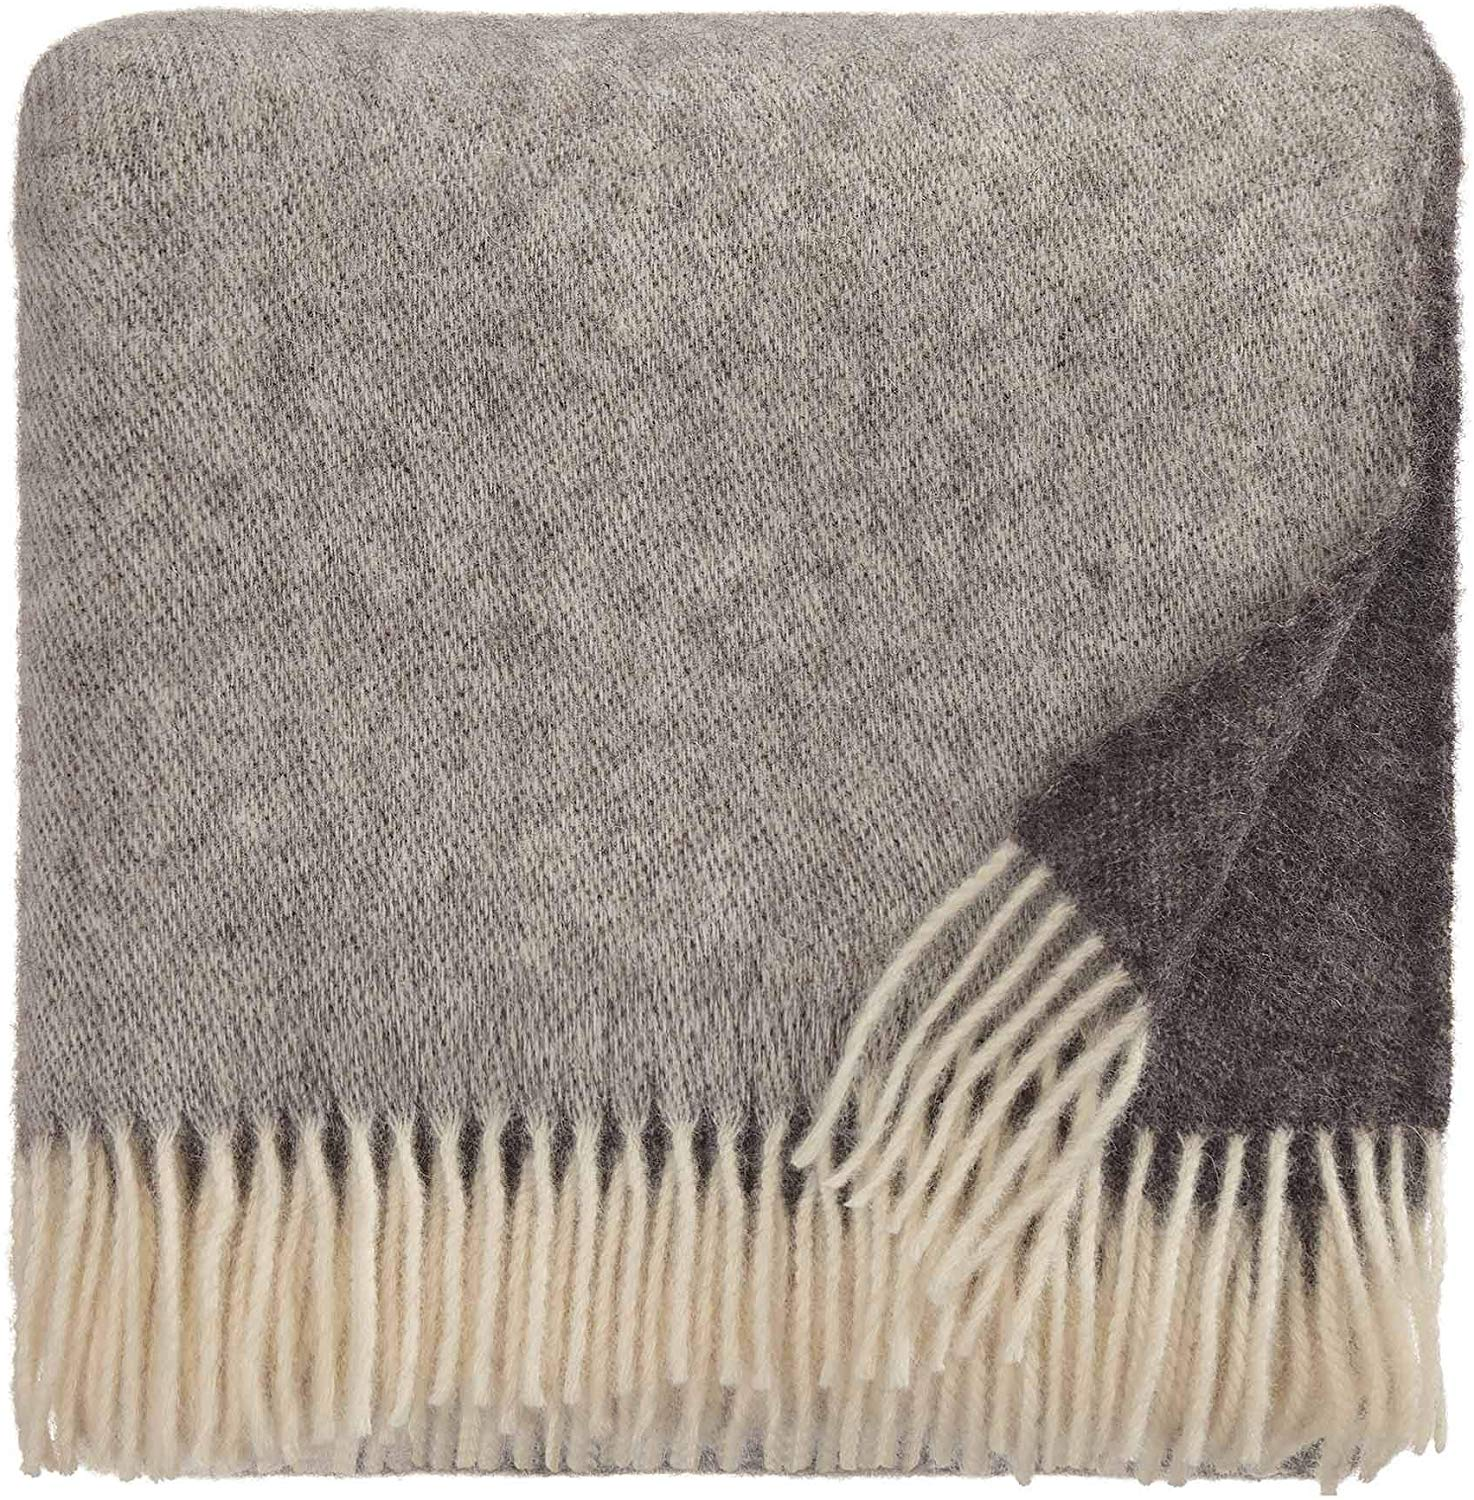 URBANARA 100% Pure Scandinavian Wool Throw Salakas 55x87 Brown-Grey/Cream with Fringe — Virgin Wool Blanket with Two Main Colors — Perfect for Couch, Sofa, Bedroom, King or Queen Size Bed